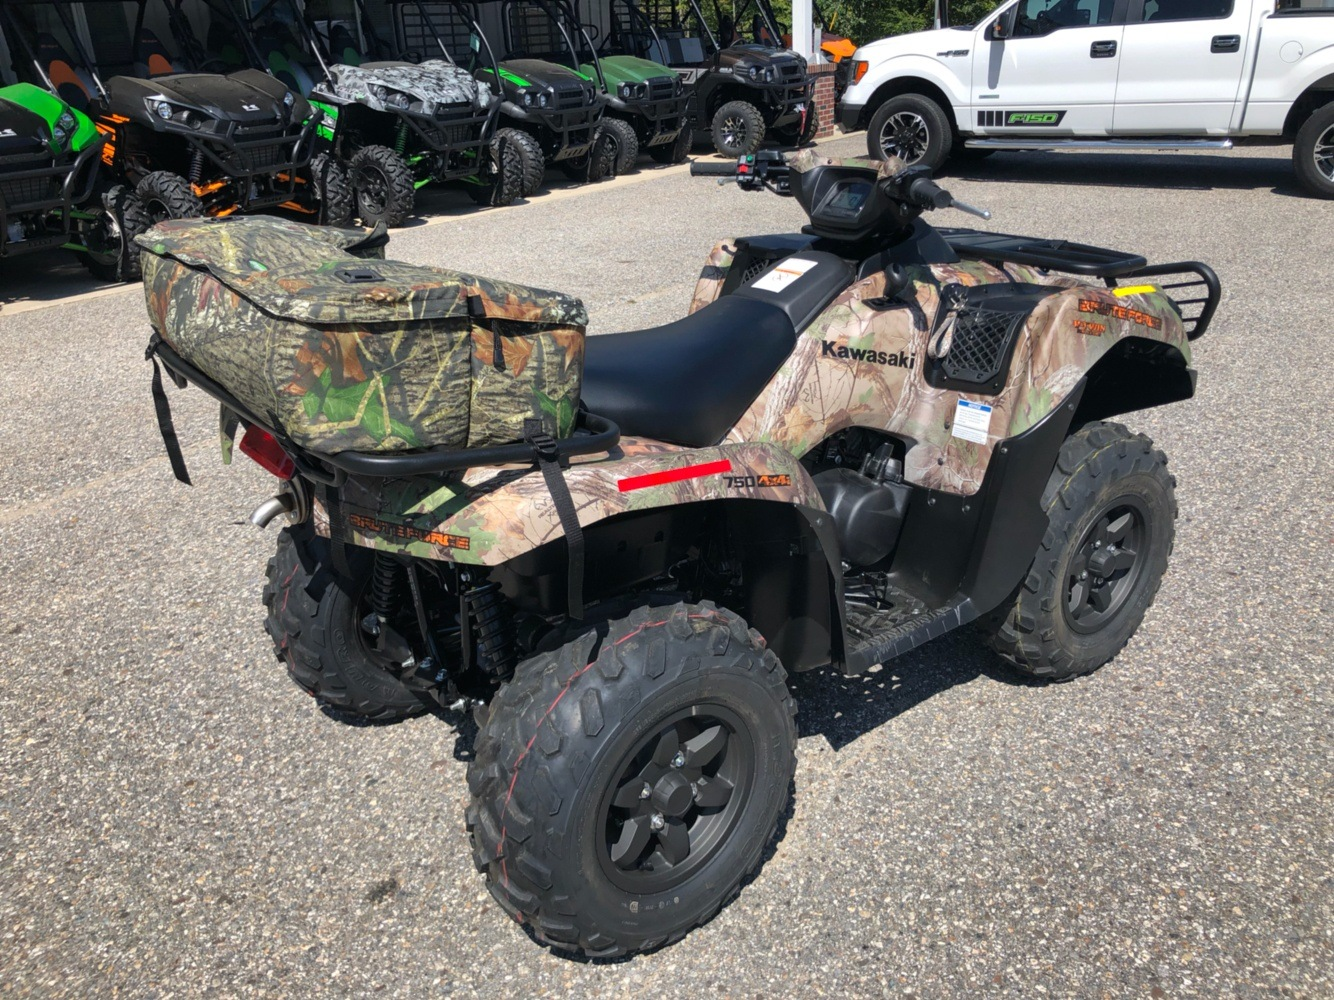 2019 Kawasaki Brute Force 750 4x4i EPS Camo in Lebanon, Maine - Photo 8